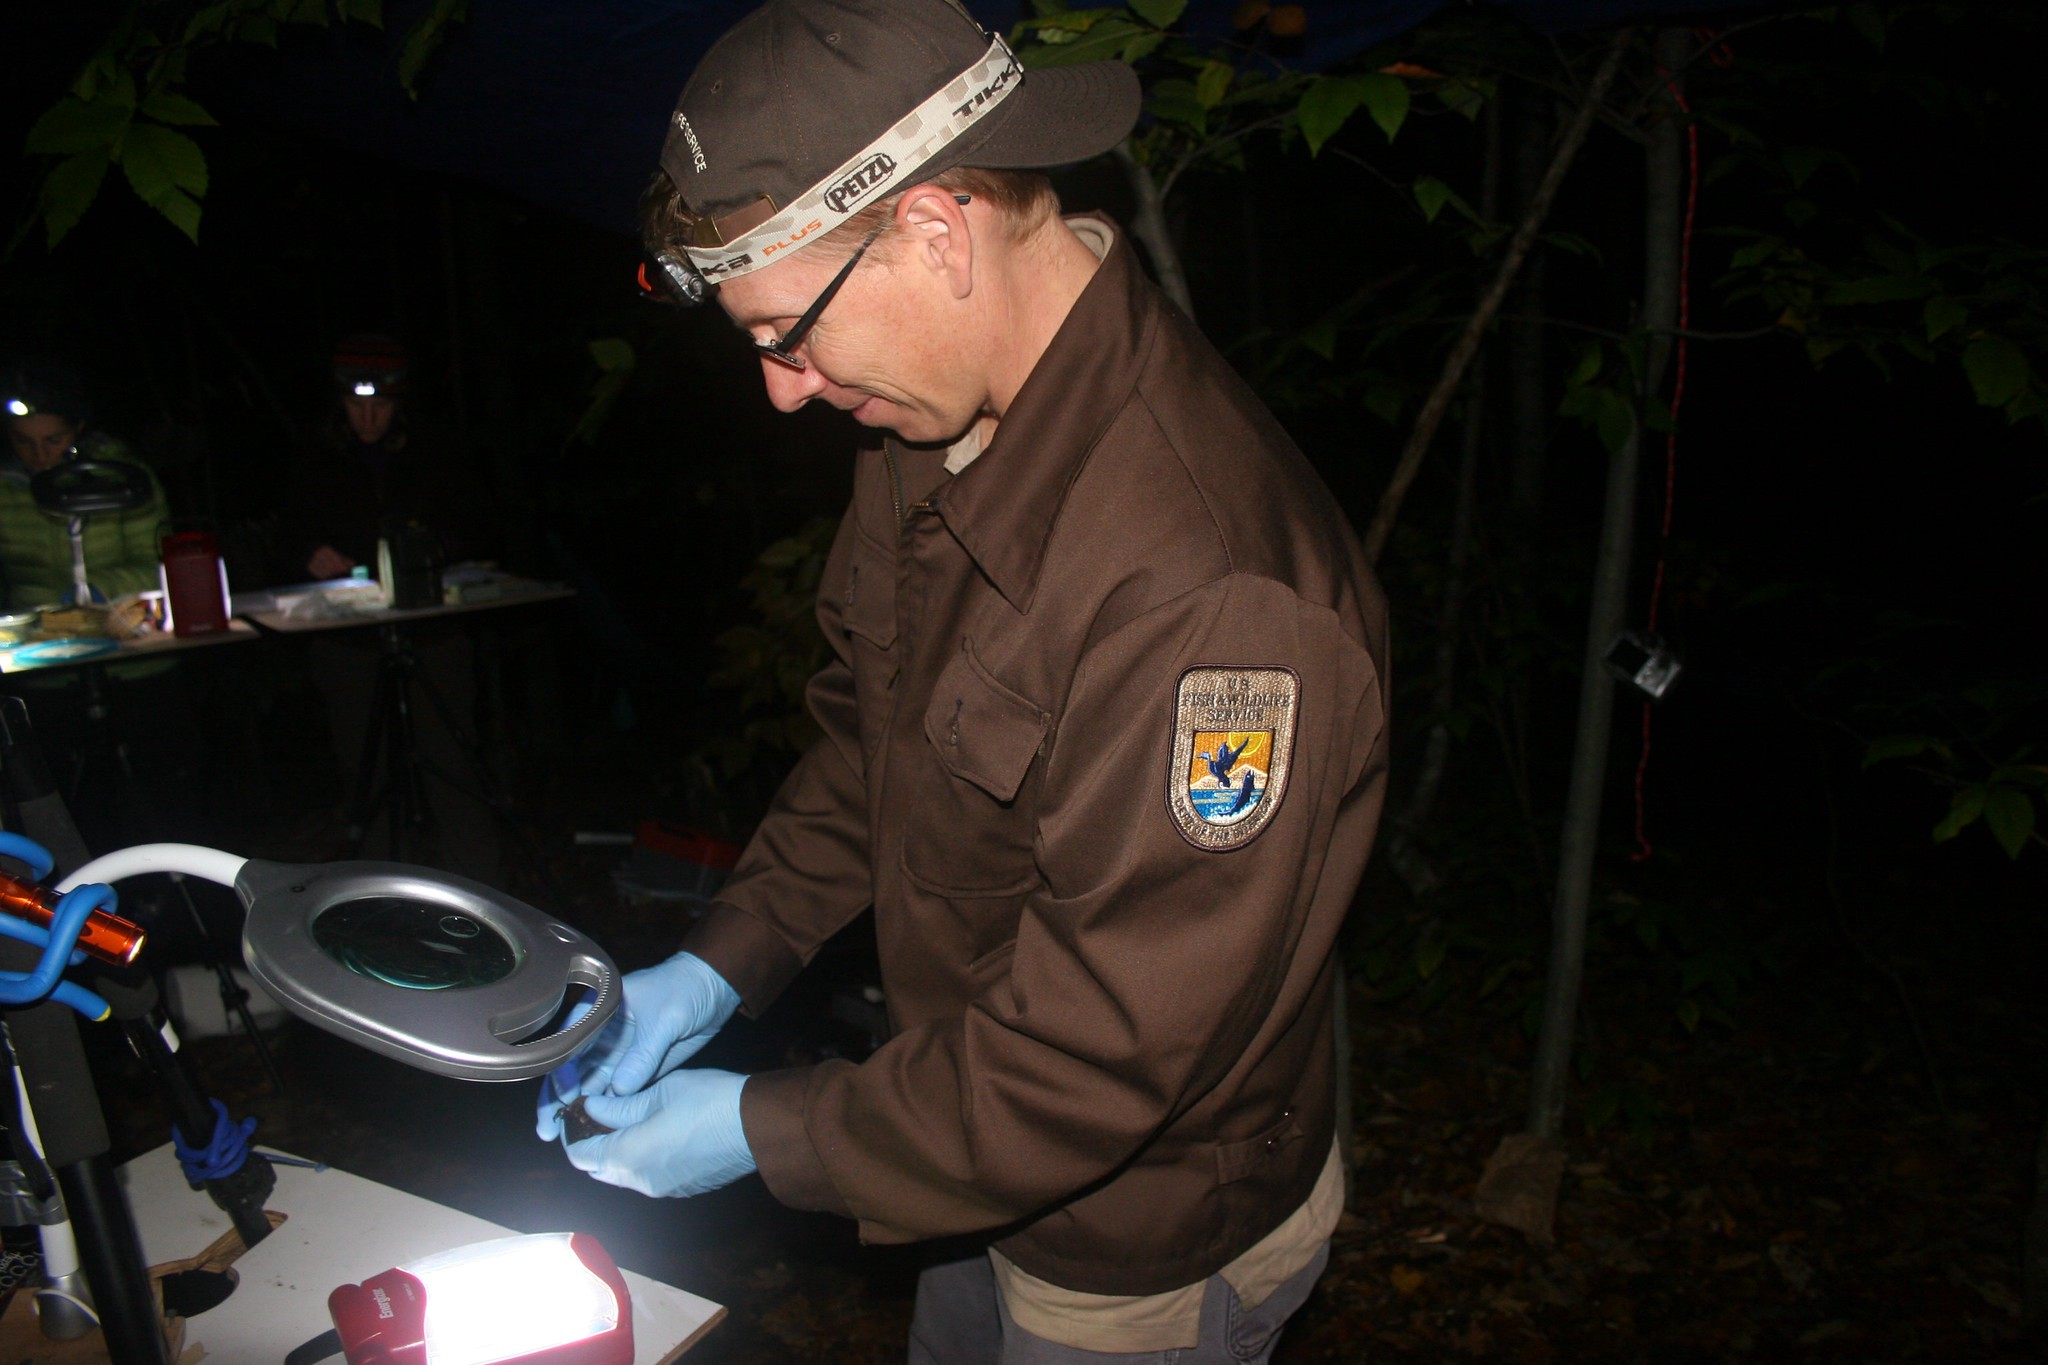 A person wearing a USFWS Jacket handles a bat under a light, working in the darkness of night